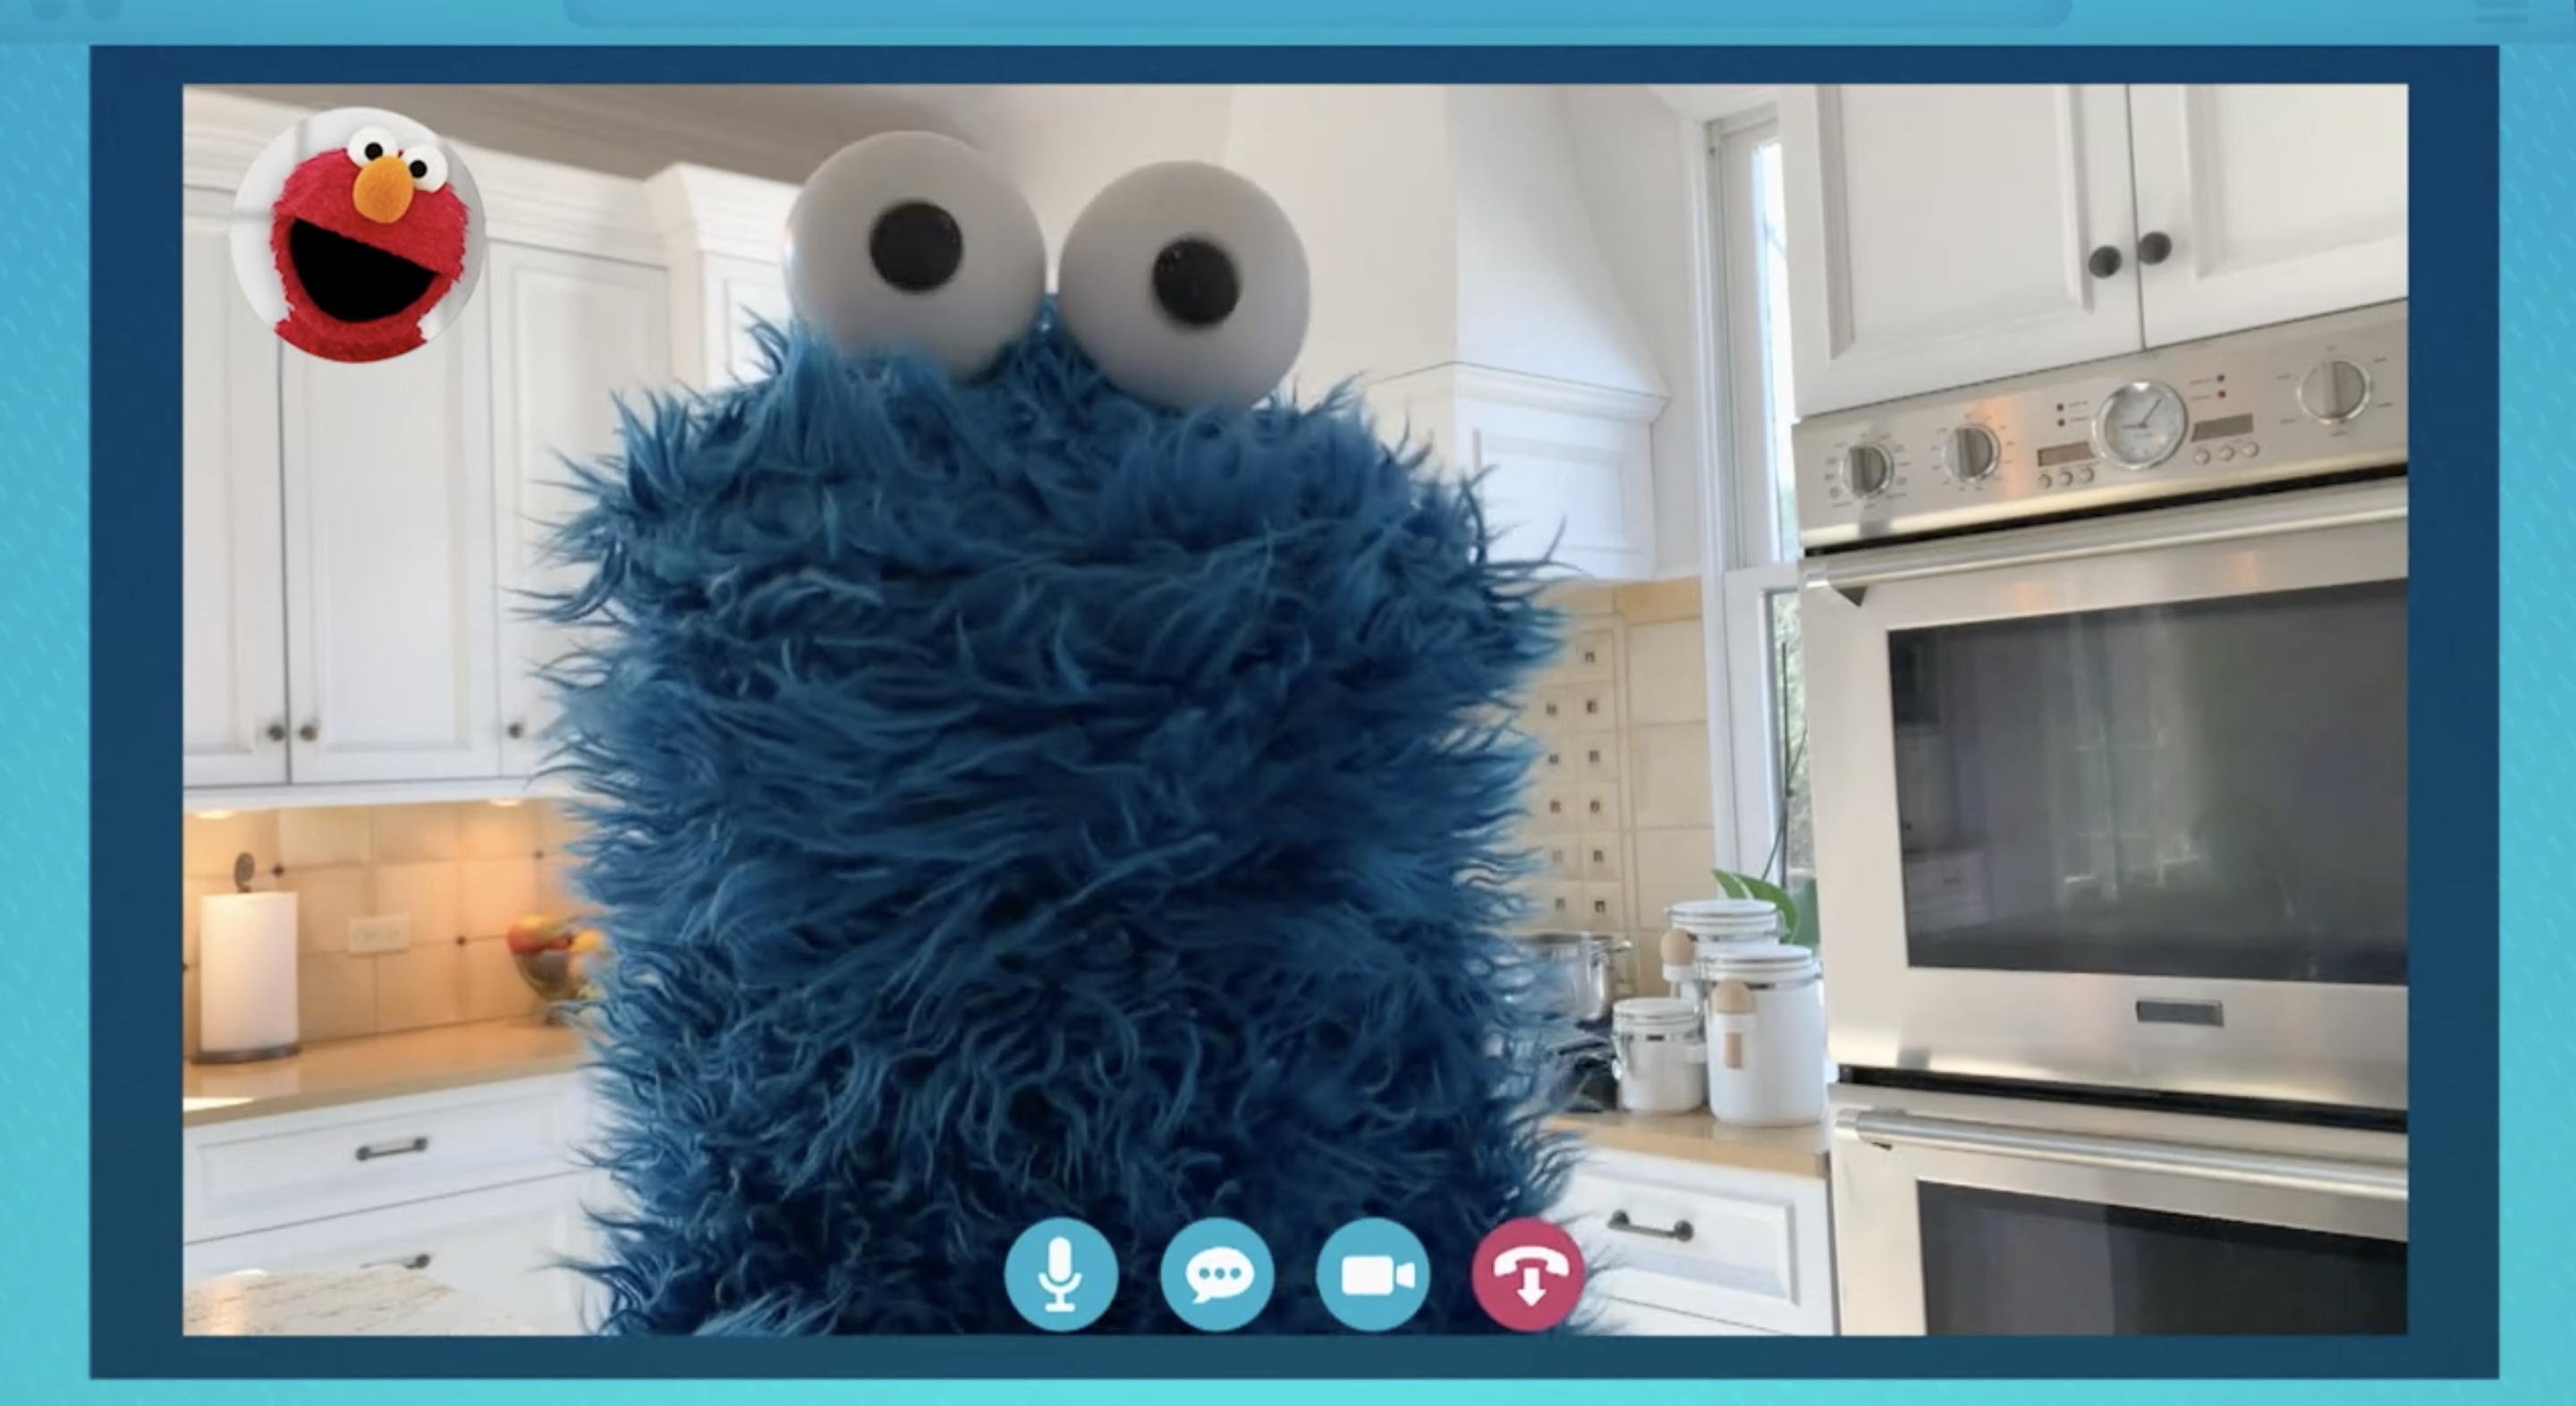 Cookie Monster teleconferences with Elmo from his kitchen, in Sesame Street: Elmo's Playdate.